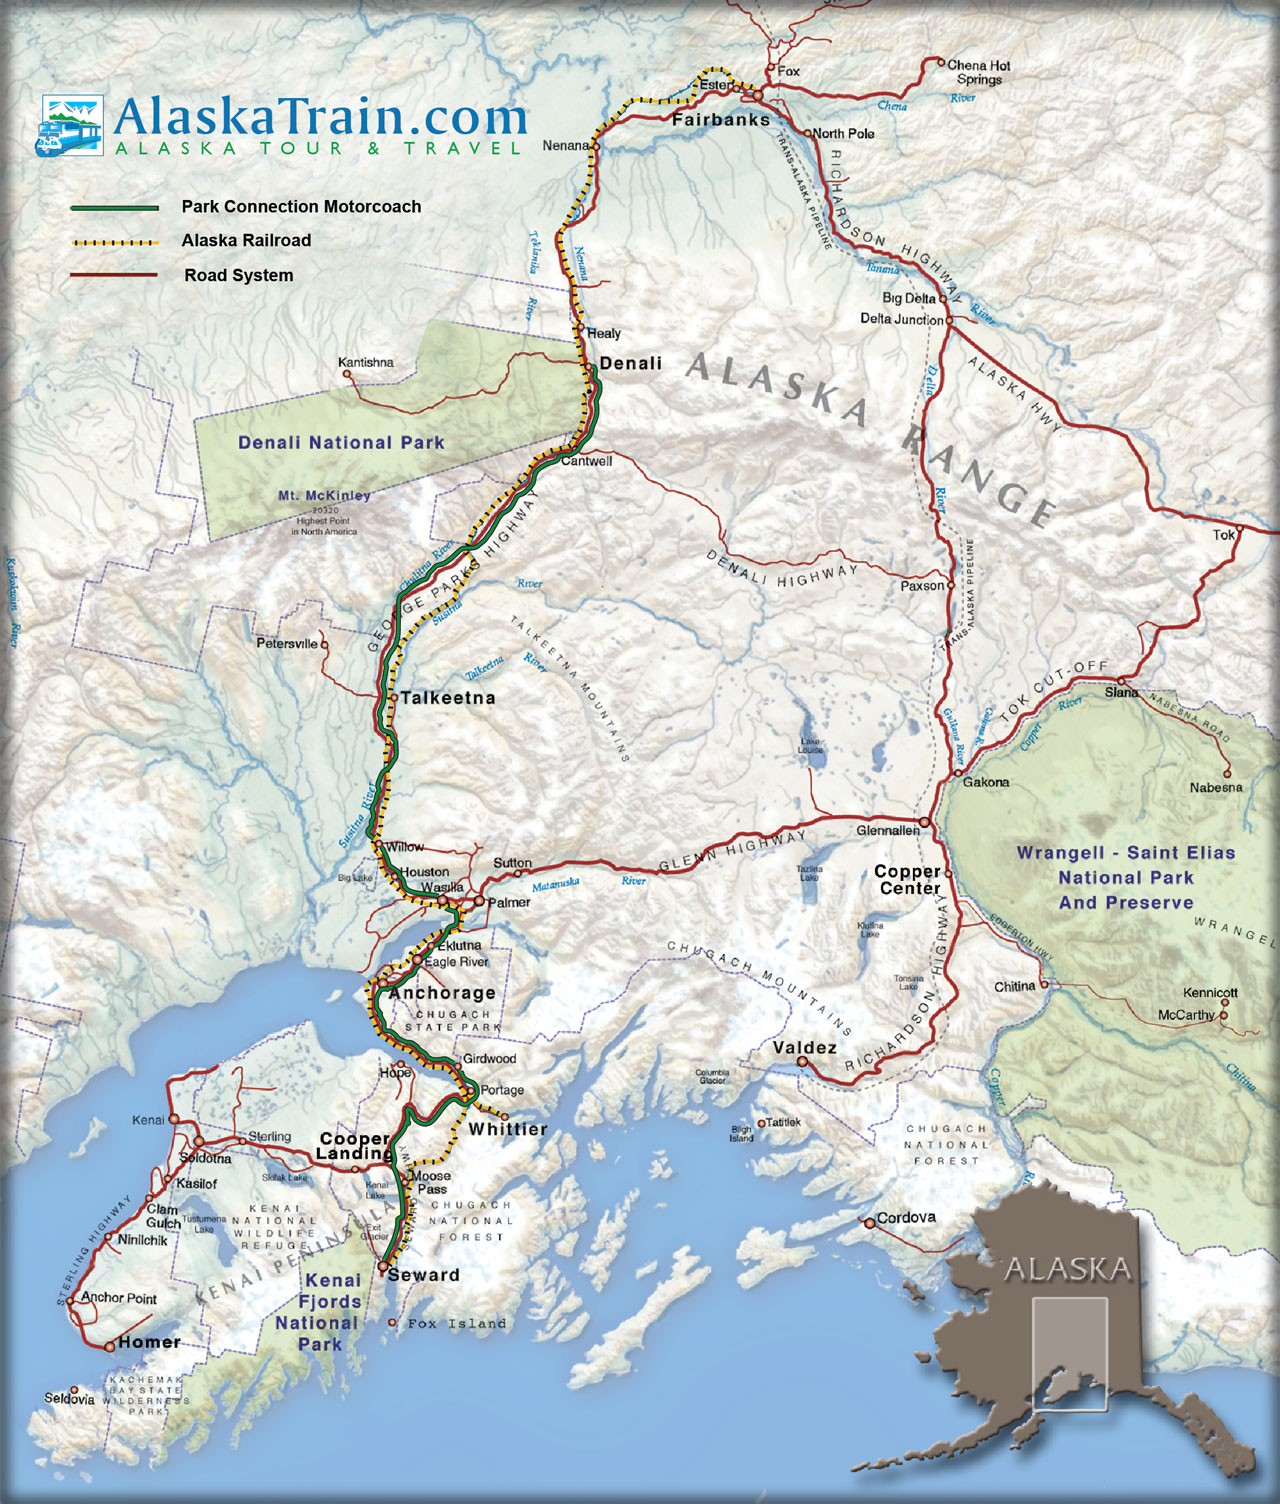 Alaska Railroad Map Alaska Train Maps AlaskaTraincom - Alaska maps